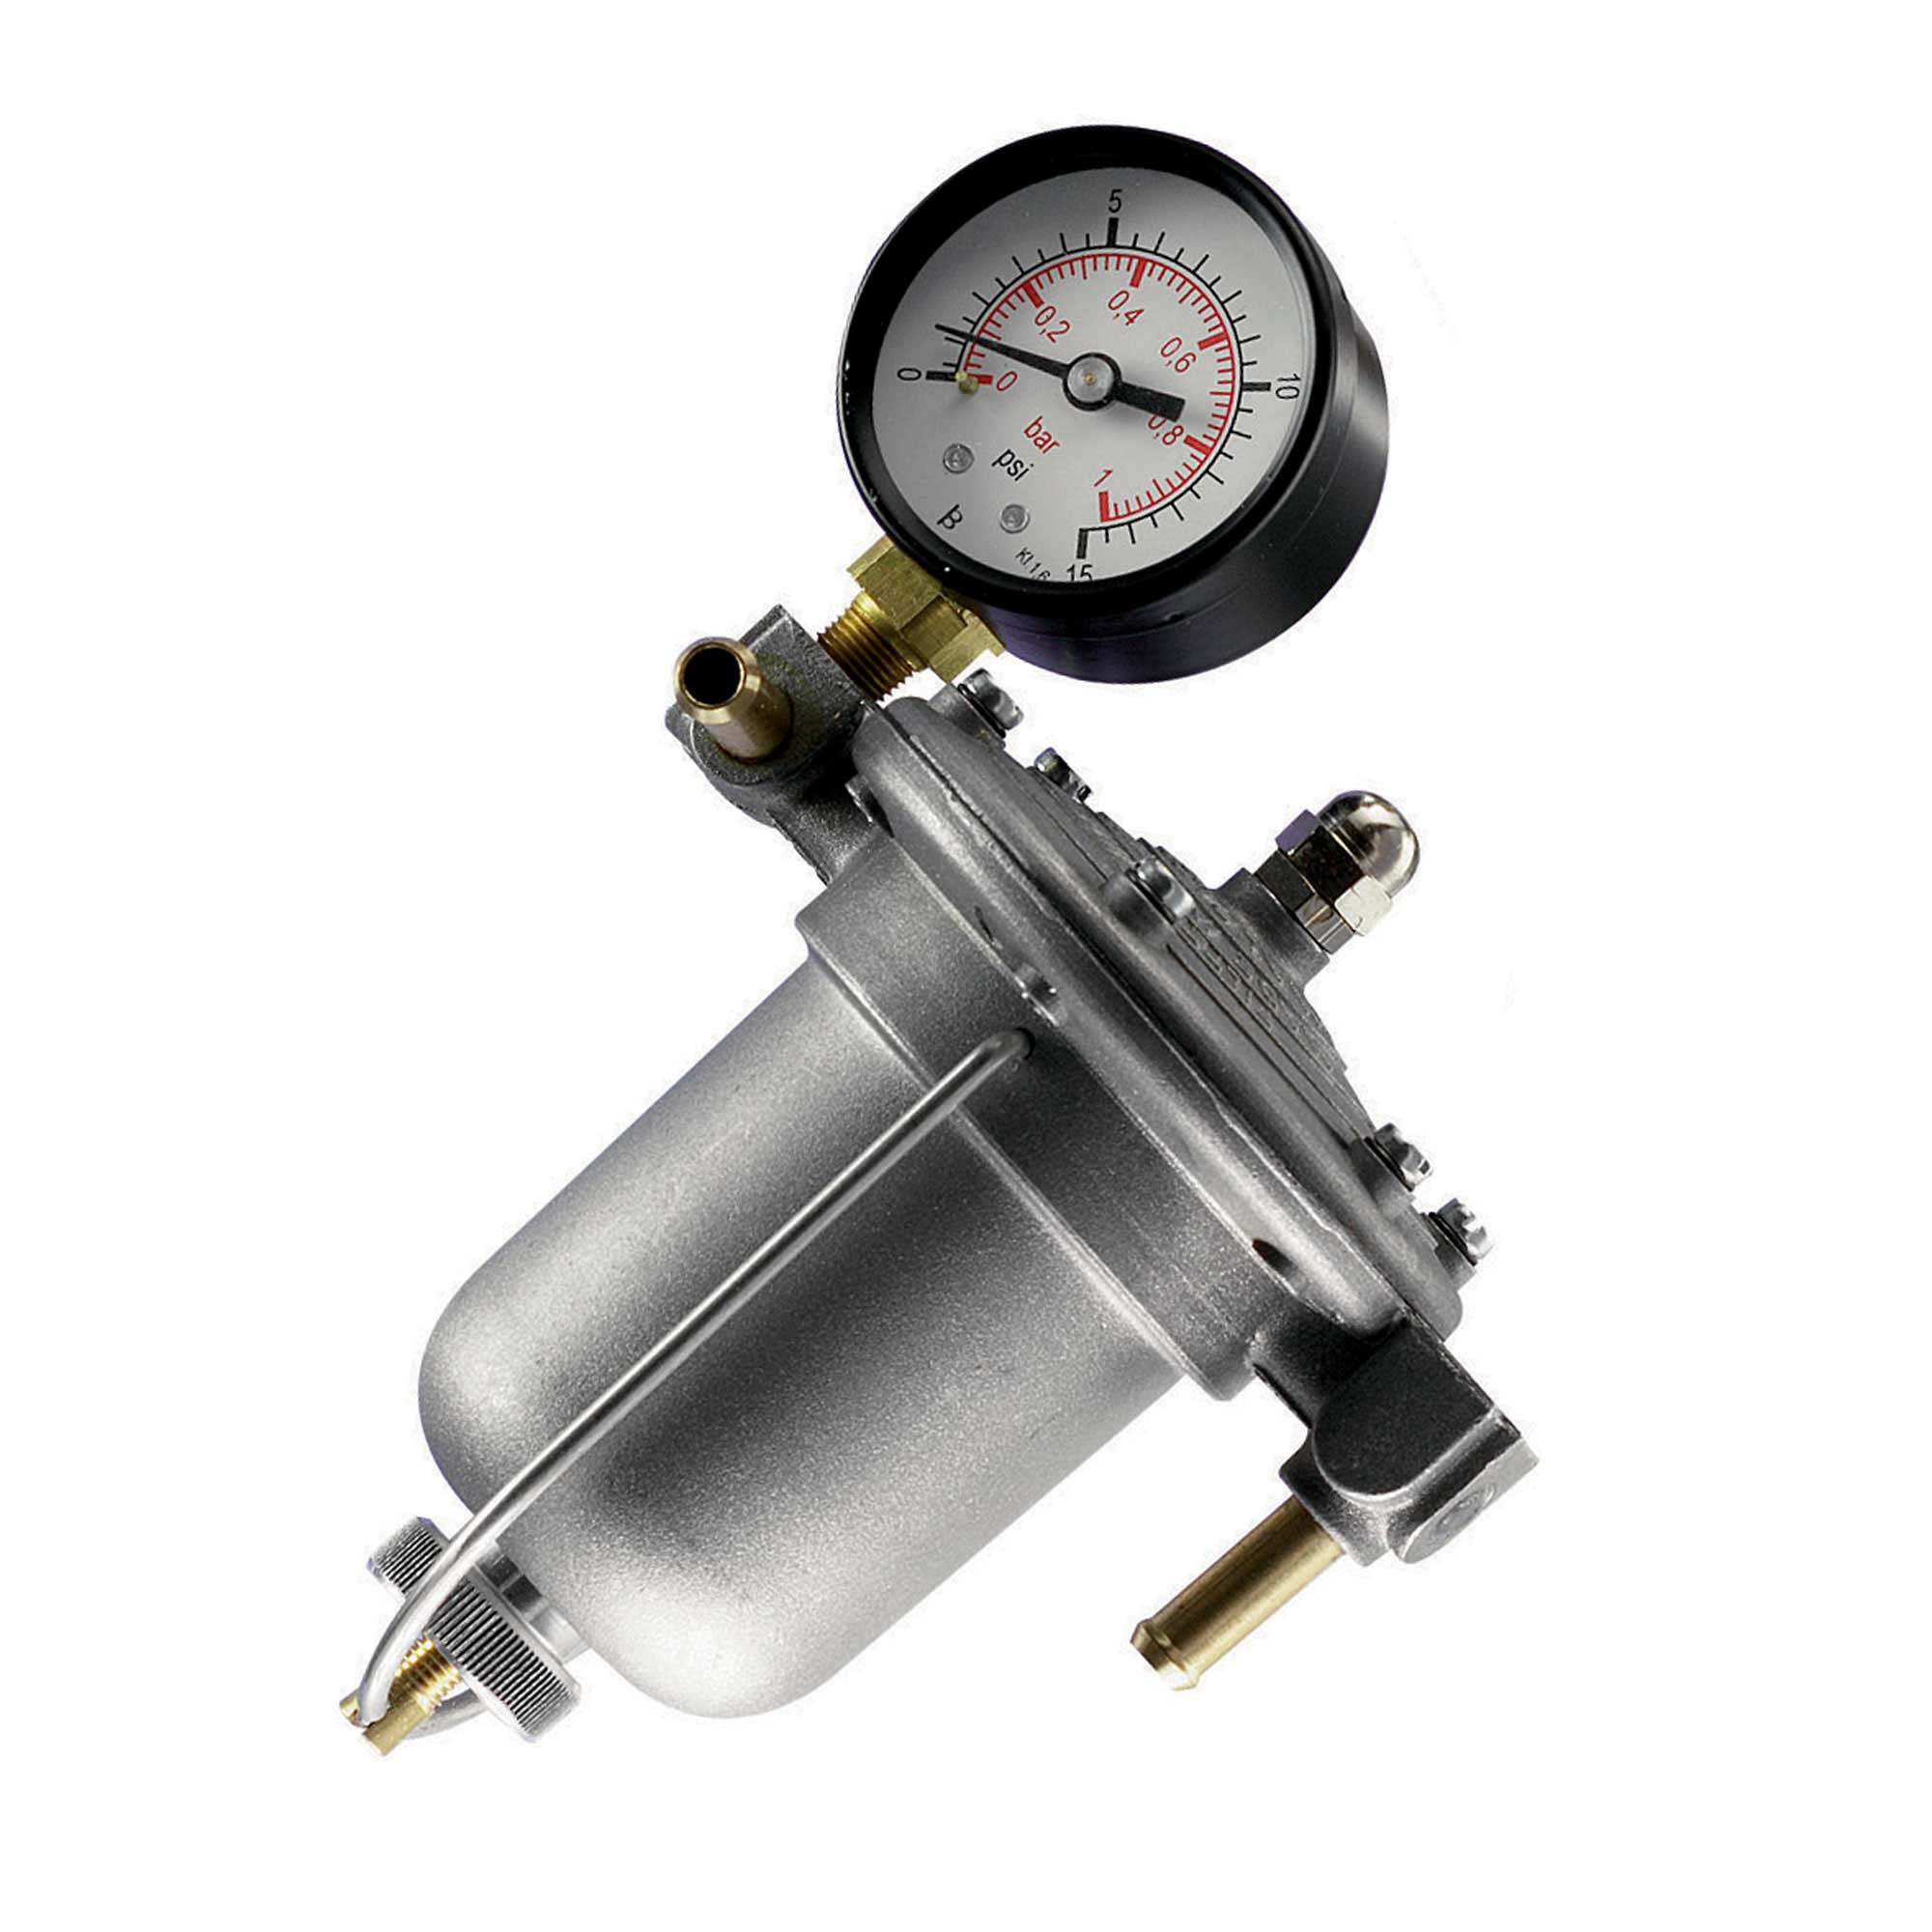 hight resolution of malpassi competition filter king fuel pressure regulator and filter